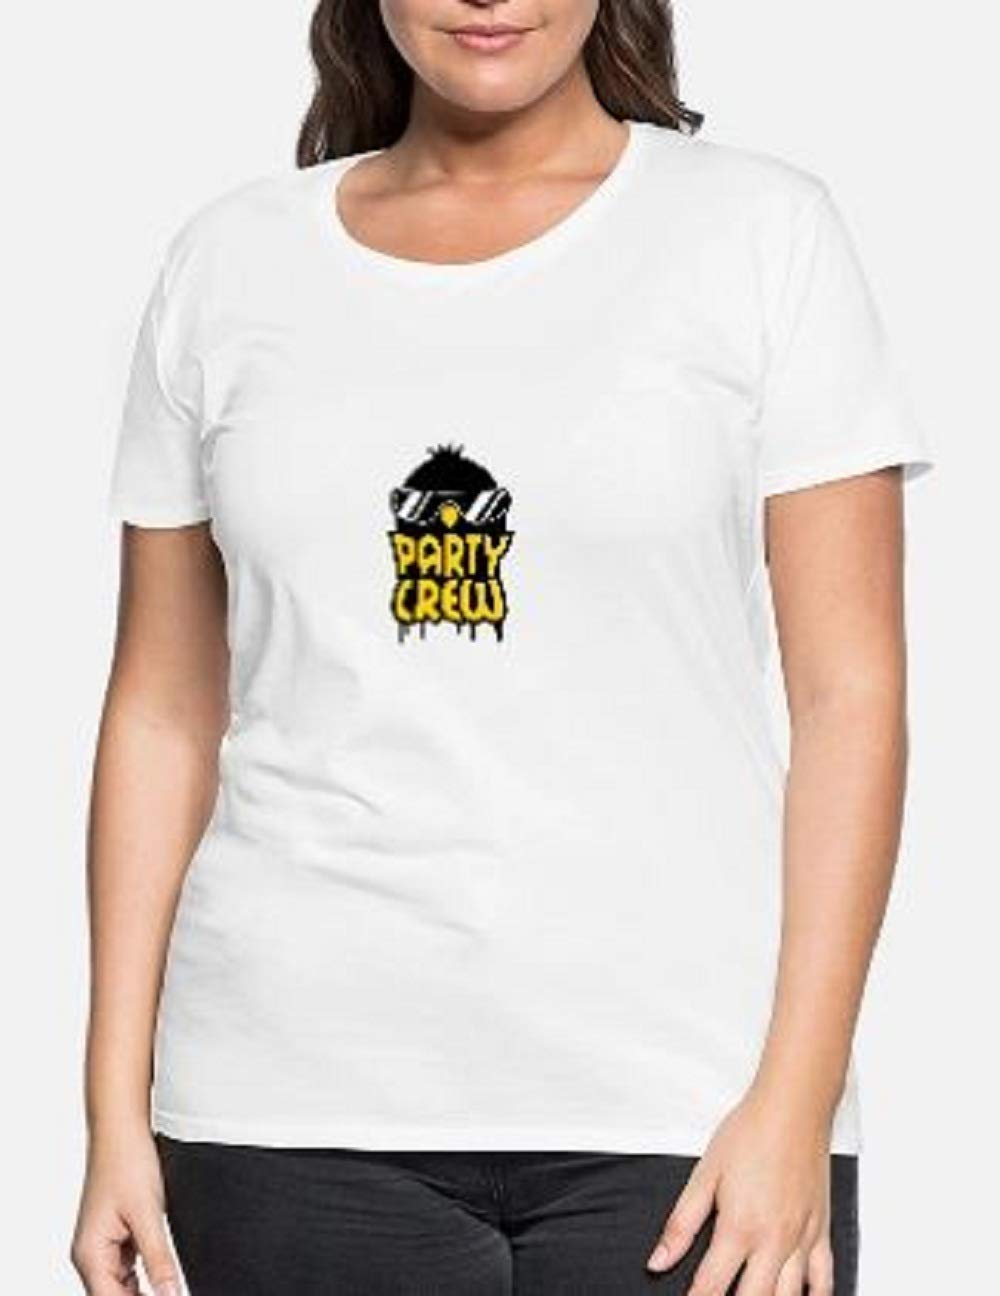 Cool Party Crew Penguin T Shirt For Funny Letter Short Sleeve Tees Tops